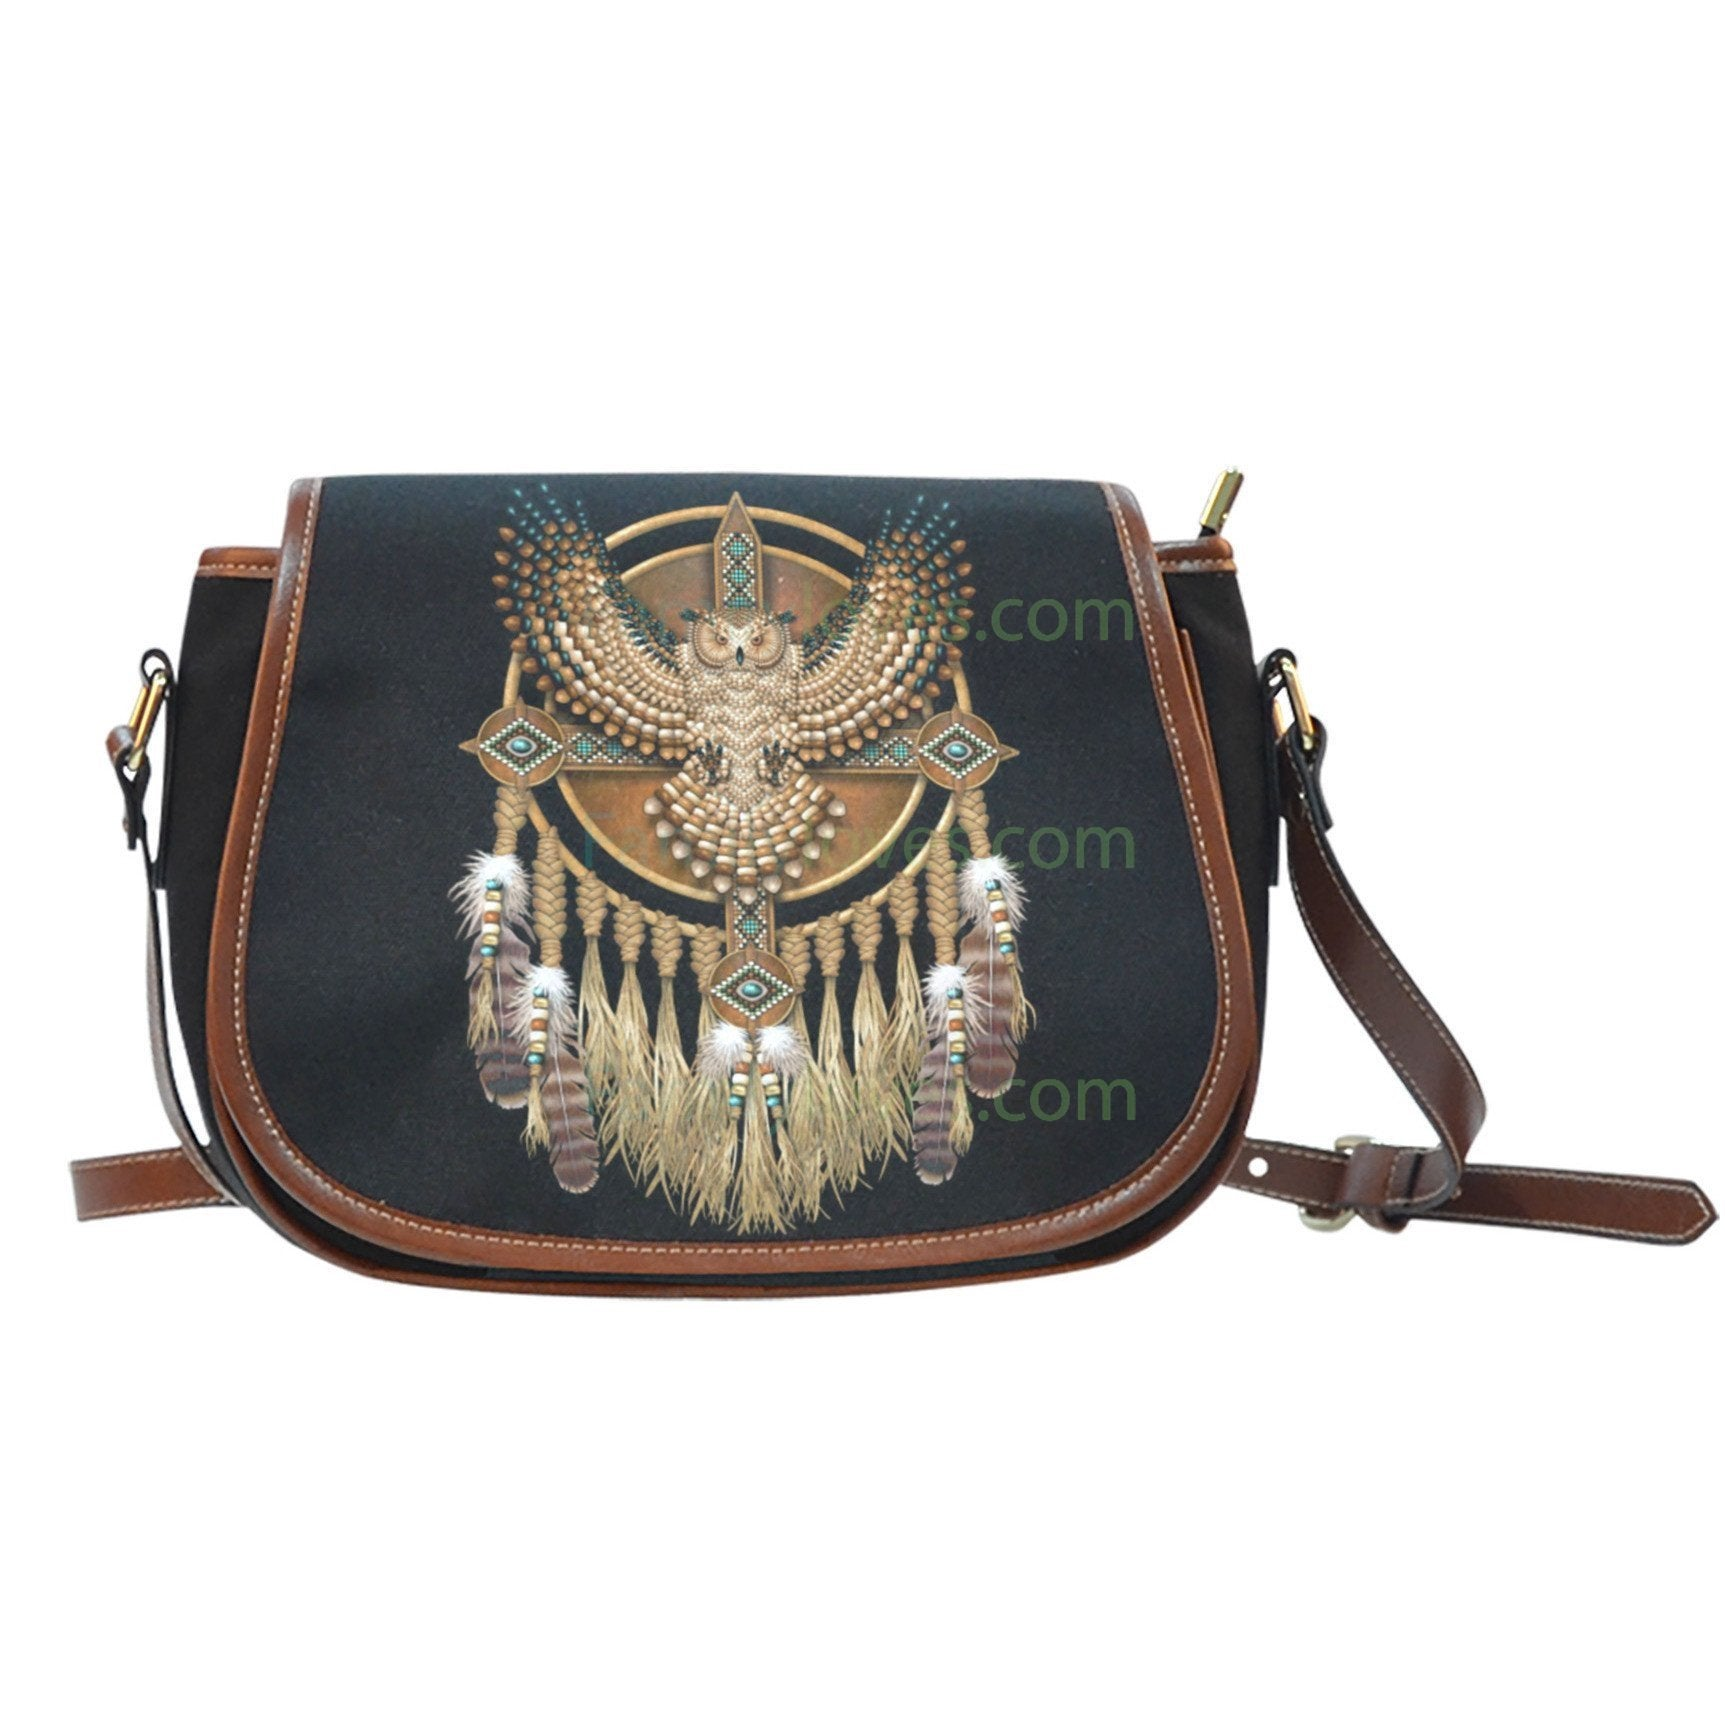 Buy NATIVE SADDLE BAG - Familyloves hoodies t-shirt jacket mug cheapest free shipping 50% off